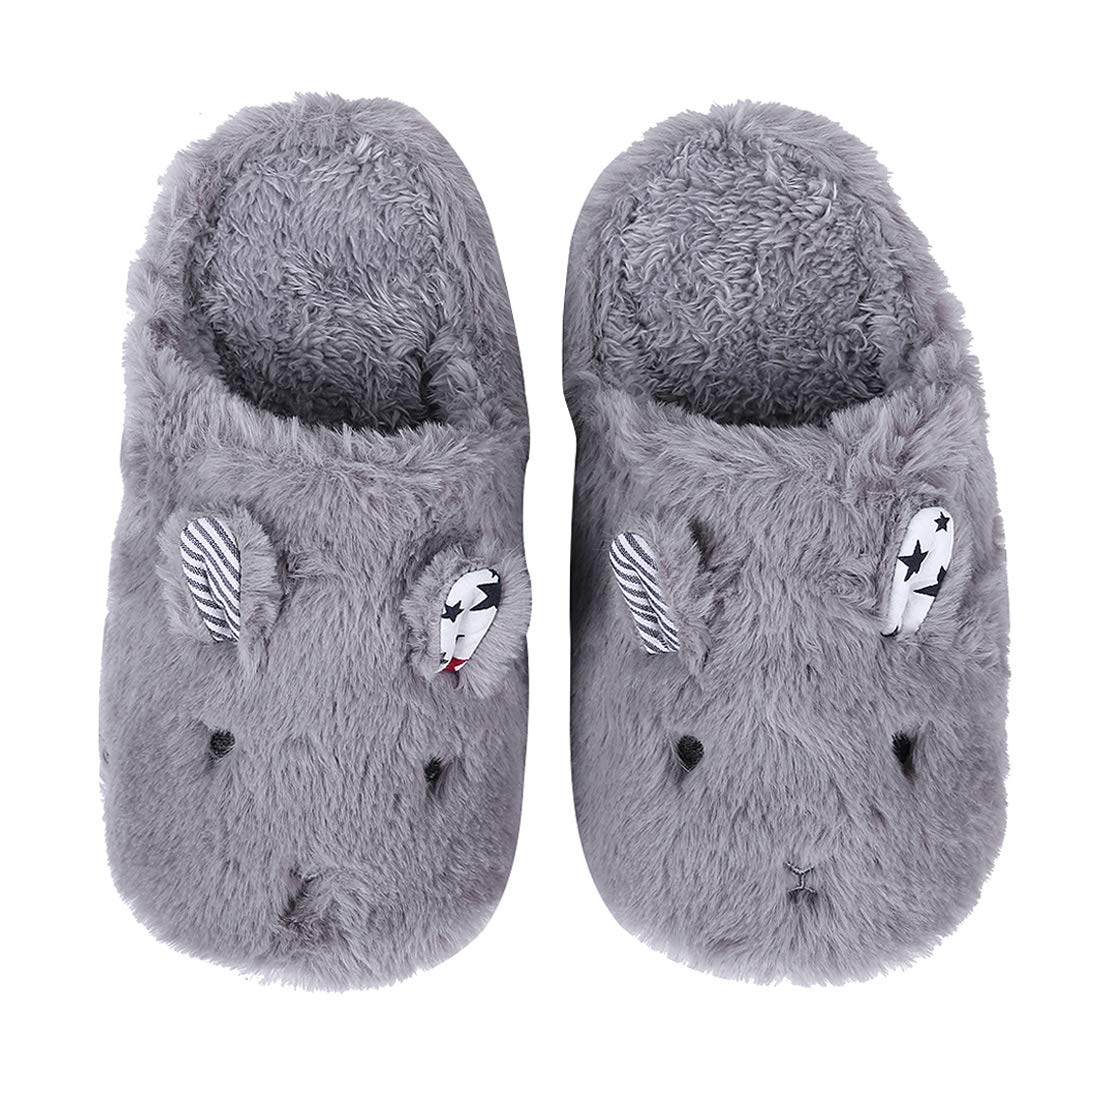 Cute Animal House Slippers Hedgehog Dog Family Indoor Slippers Waterproof Sole Fuzzy Bedroom Slippers for Kids 08G-XS